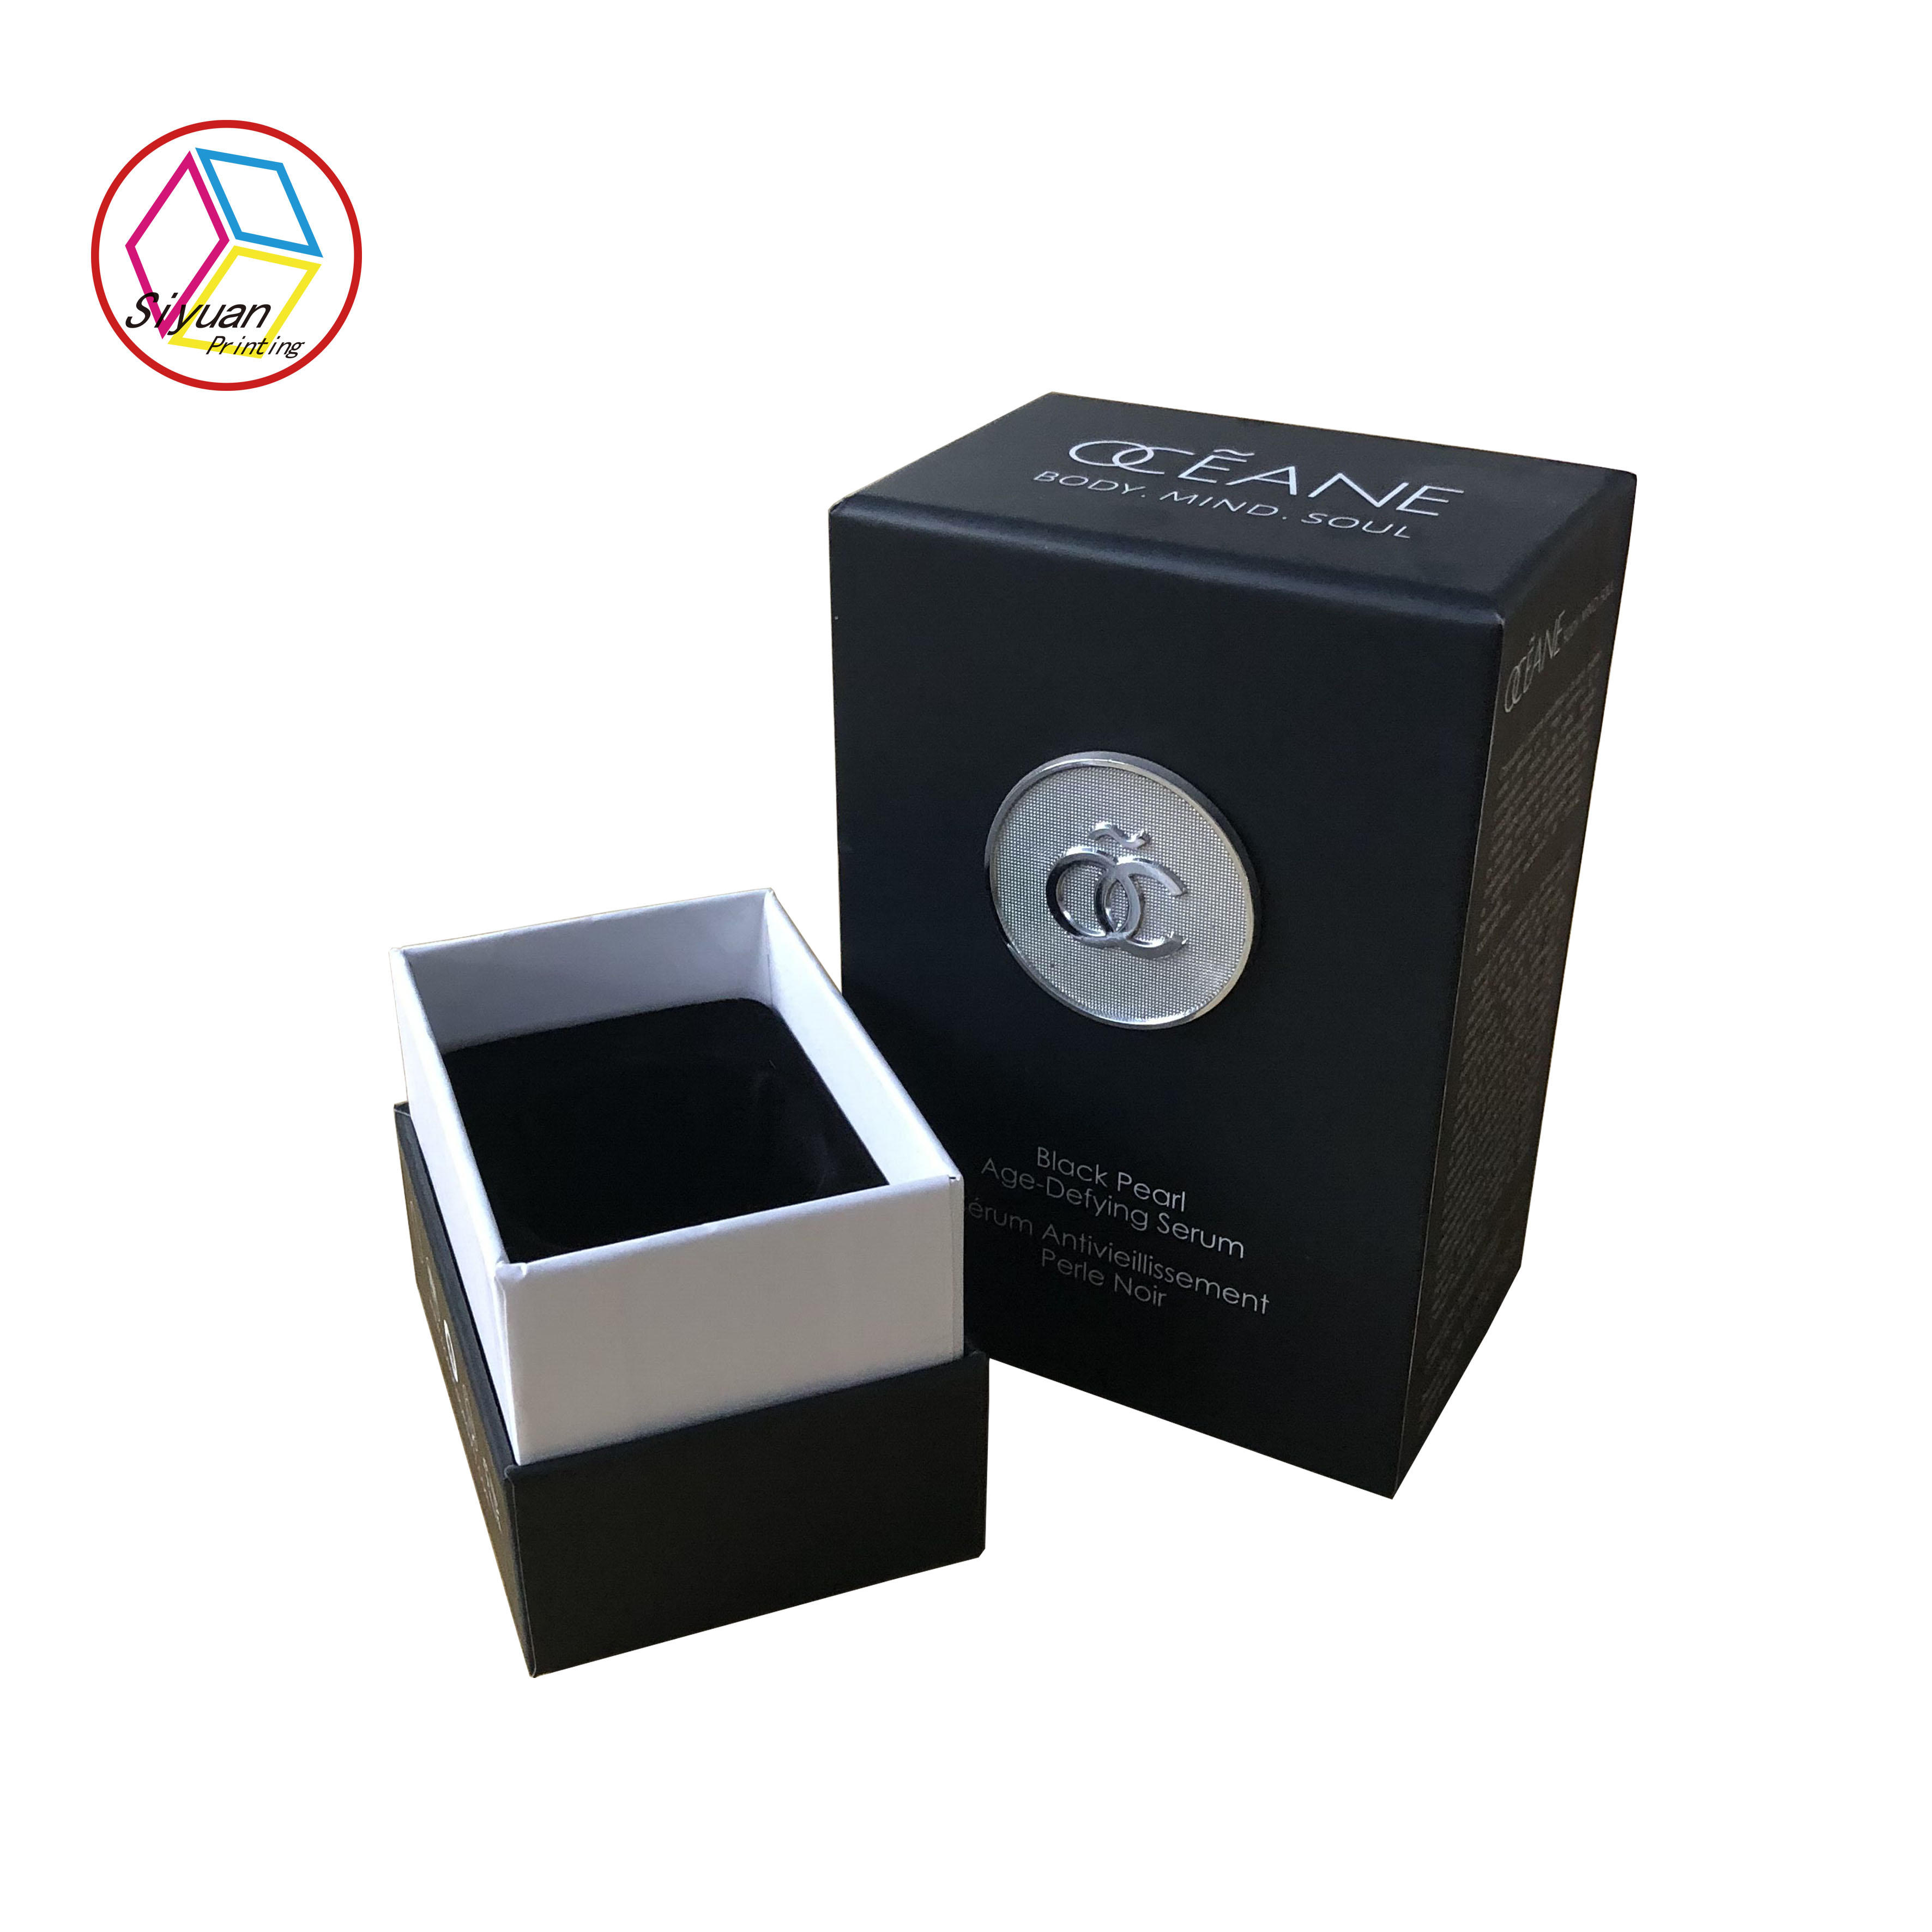 22b3f89f8 China Packaging Box, China Packaging Box Manufacturers and Suppliers on  Alibaba.com